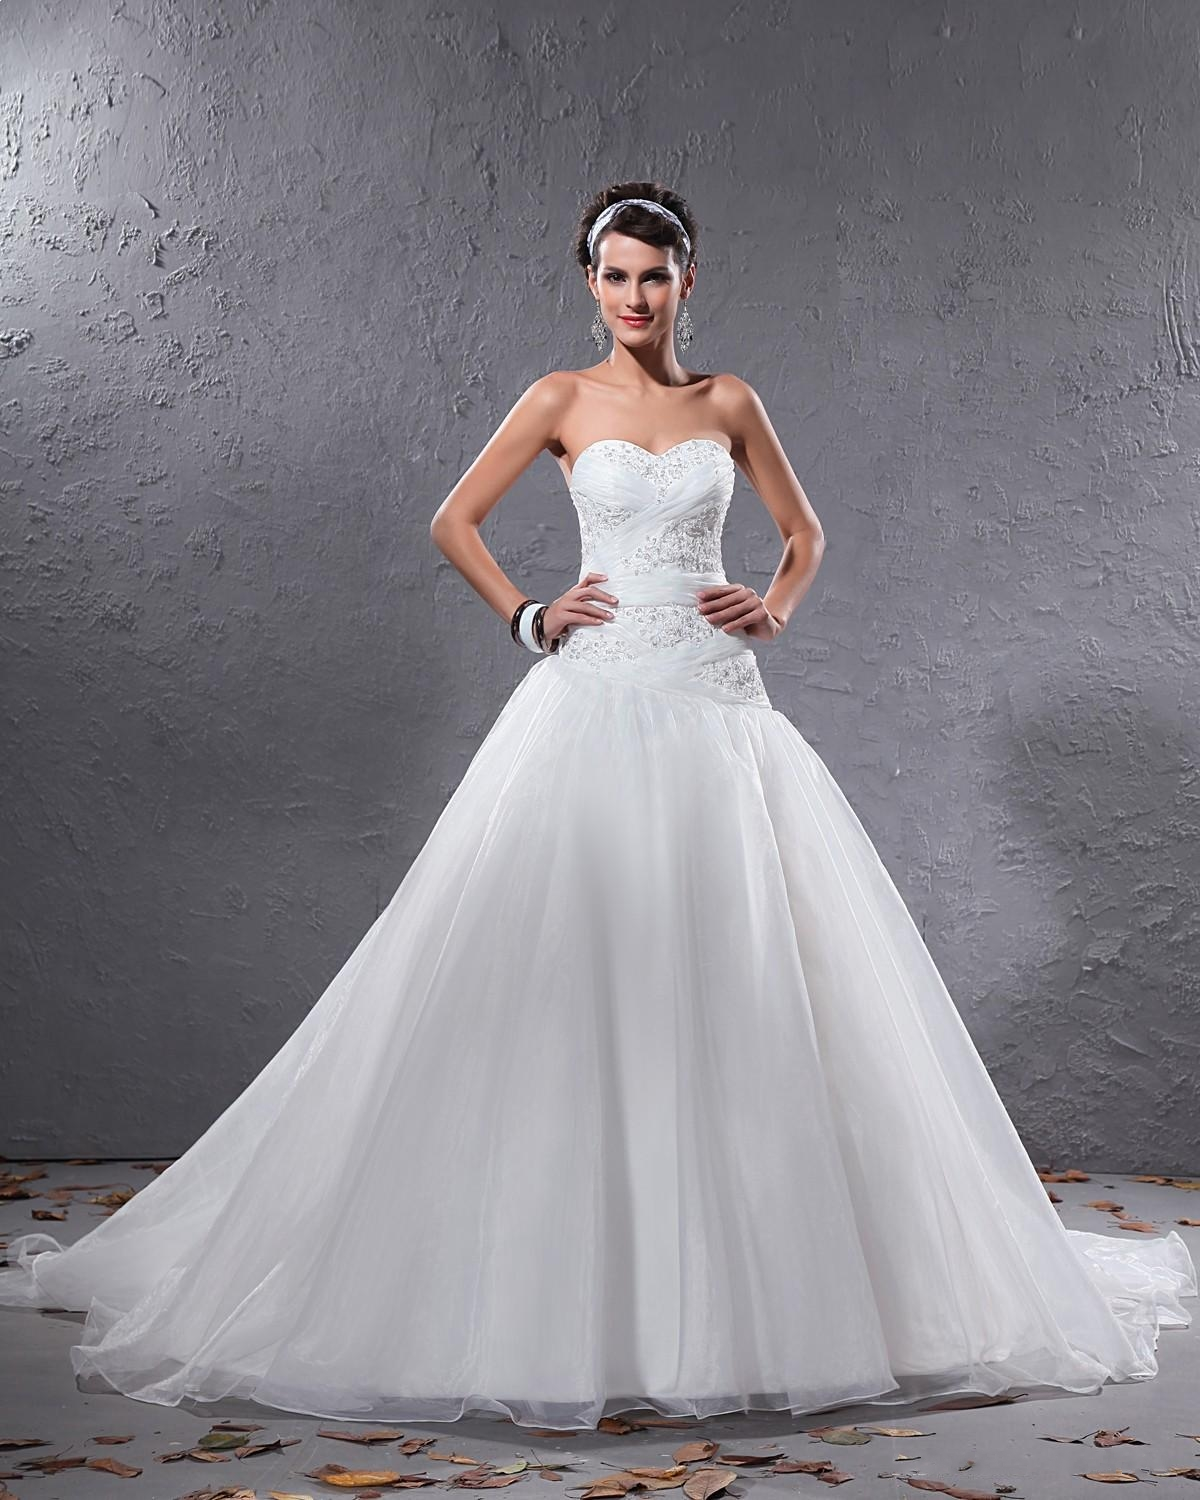 Wedding Dress Types: White Wedding Dress